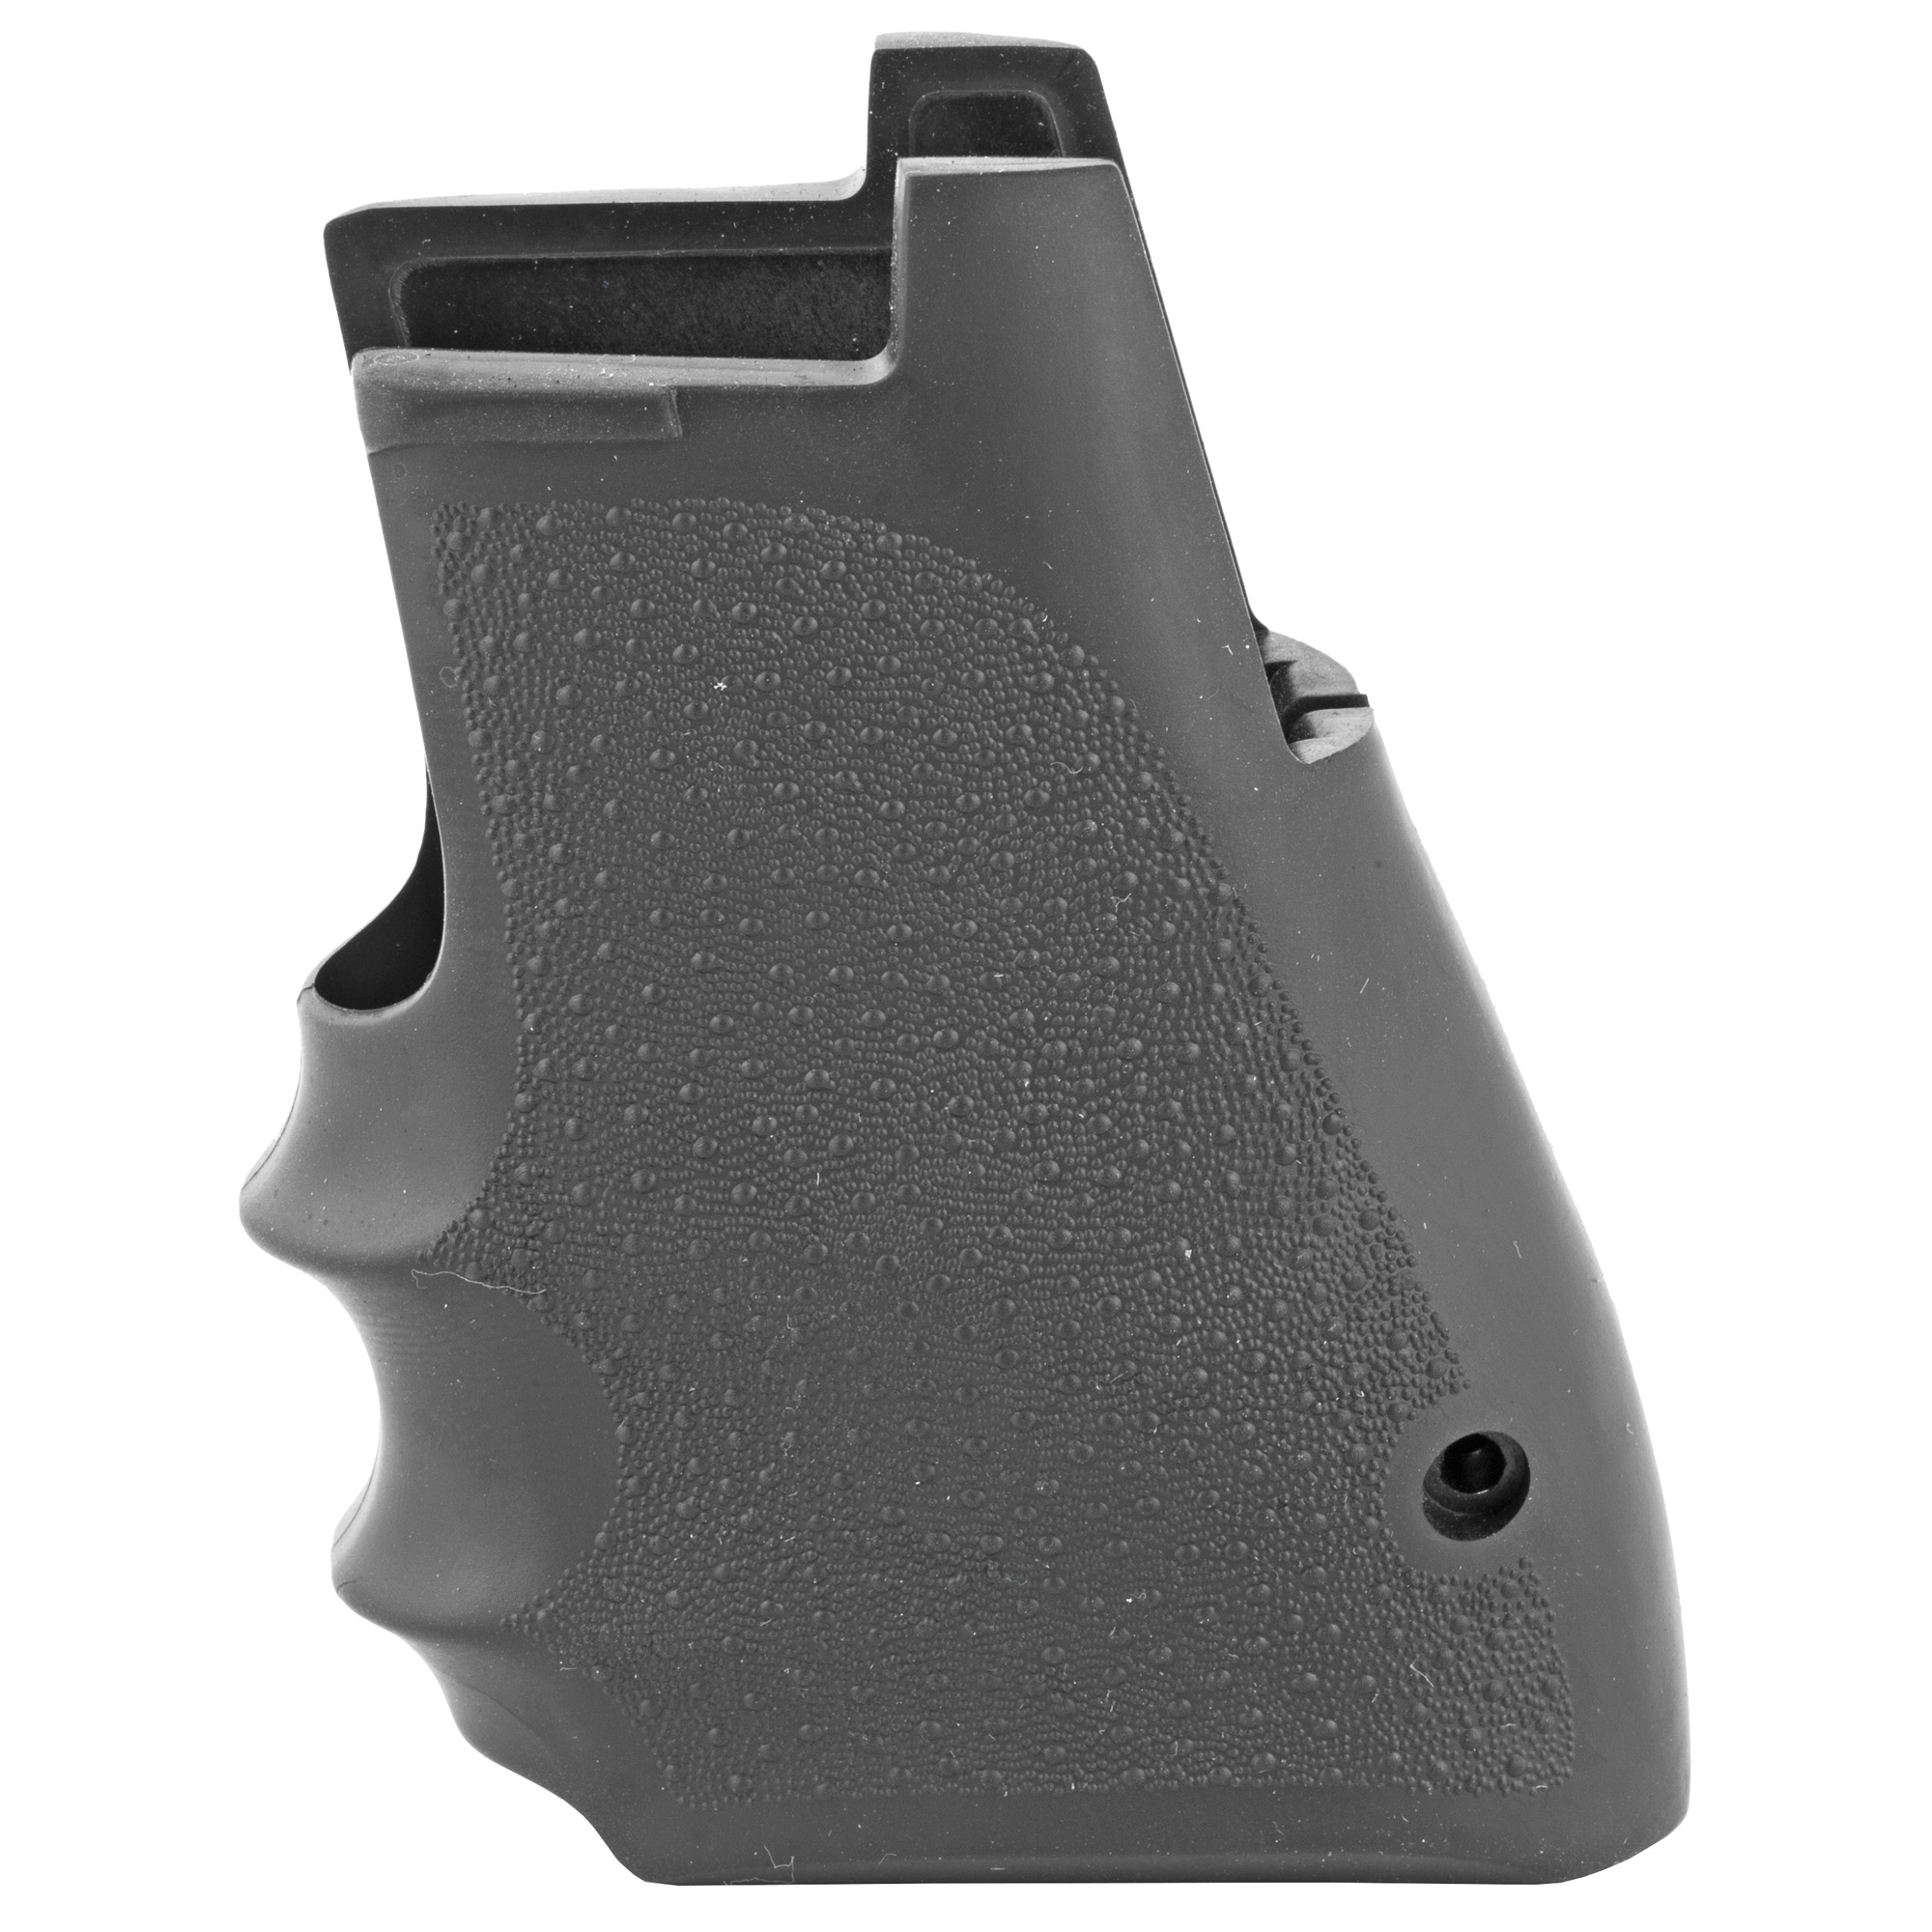 Magnum Research's Excellent Rubber Grips are made by Hogue exclusively for the Magnum Research Desert Eagle semi-automatics MKVII and XIX. It is constructed of soft synthetic rubber with a cobblestone texture and finger grooves. These grips will make the handling and controlling of your weapon considerably more comfortable.